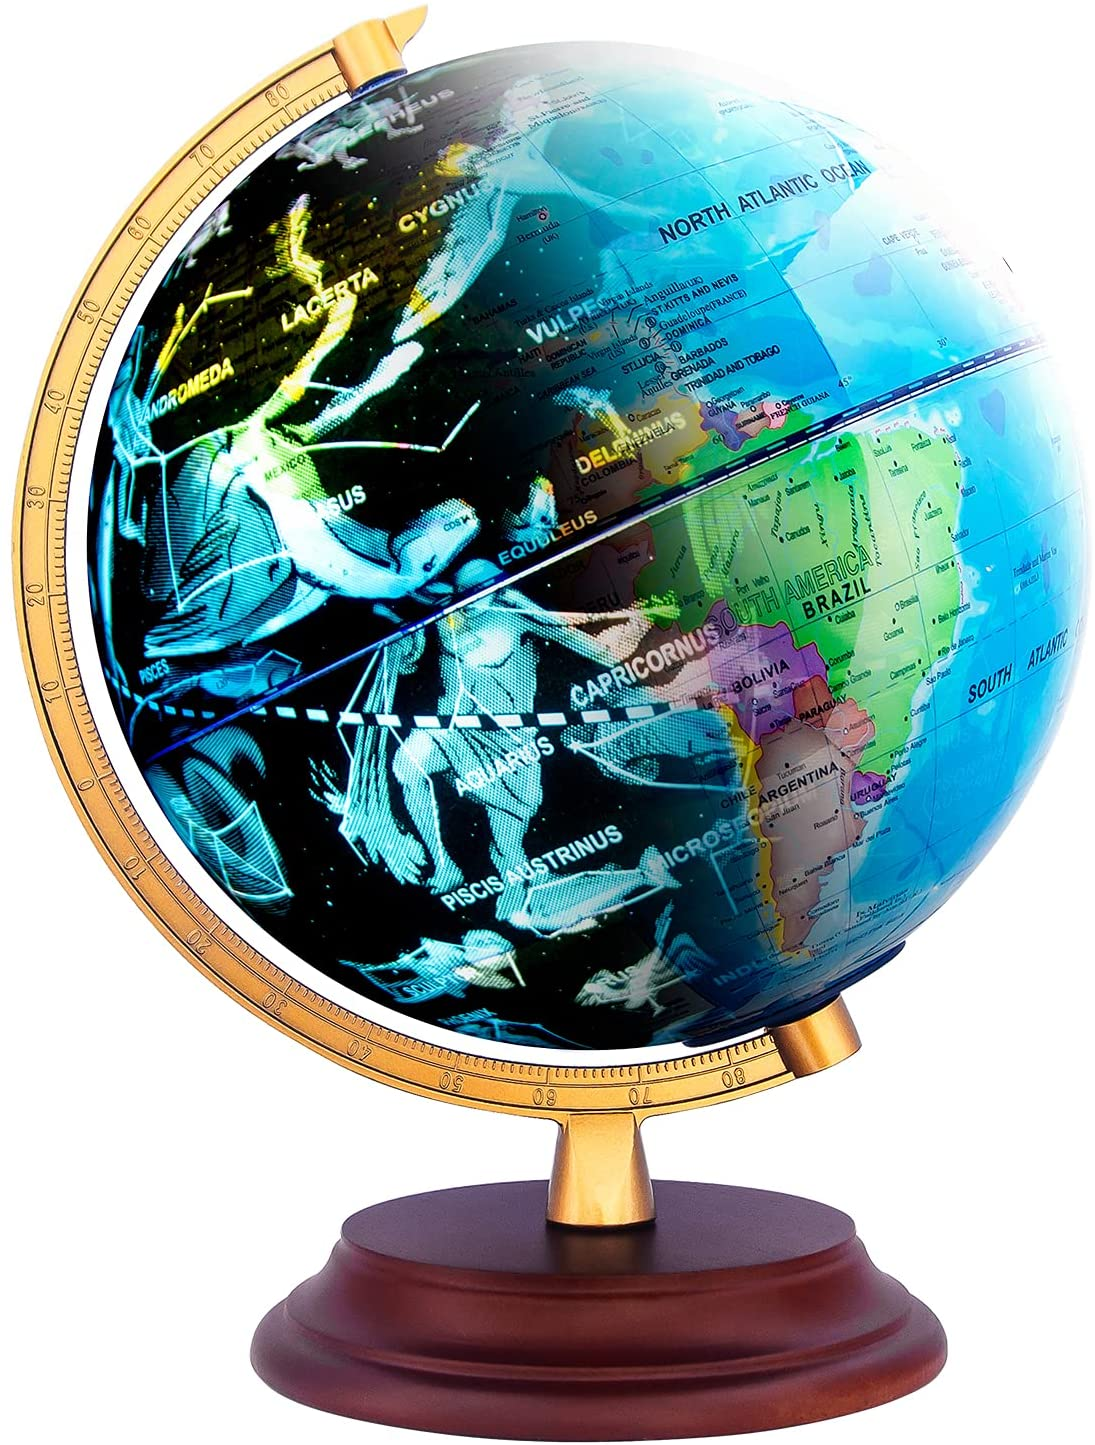 astronomy gift for kids - World Globe with Stars Constellation